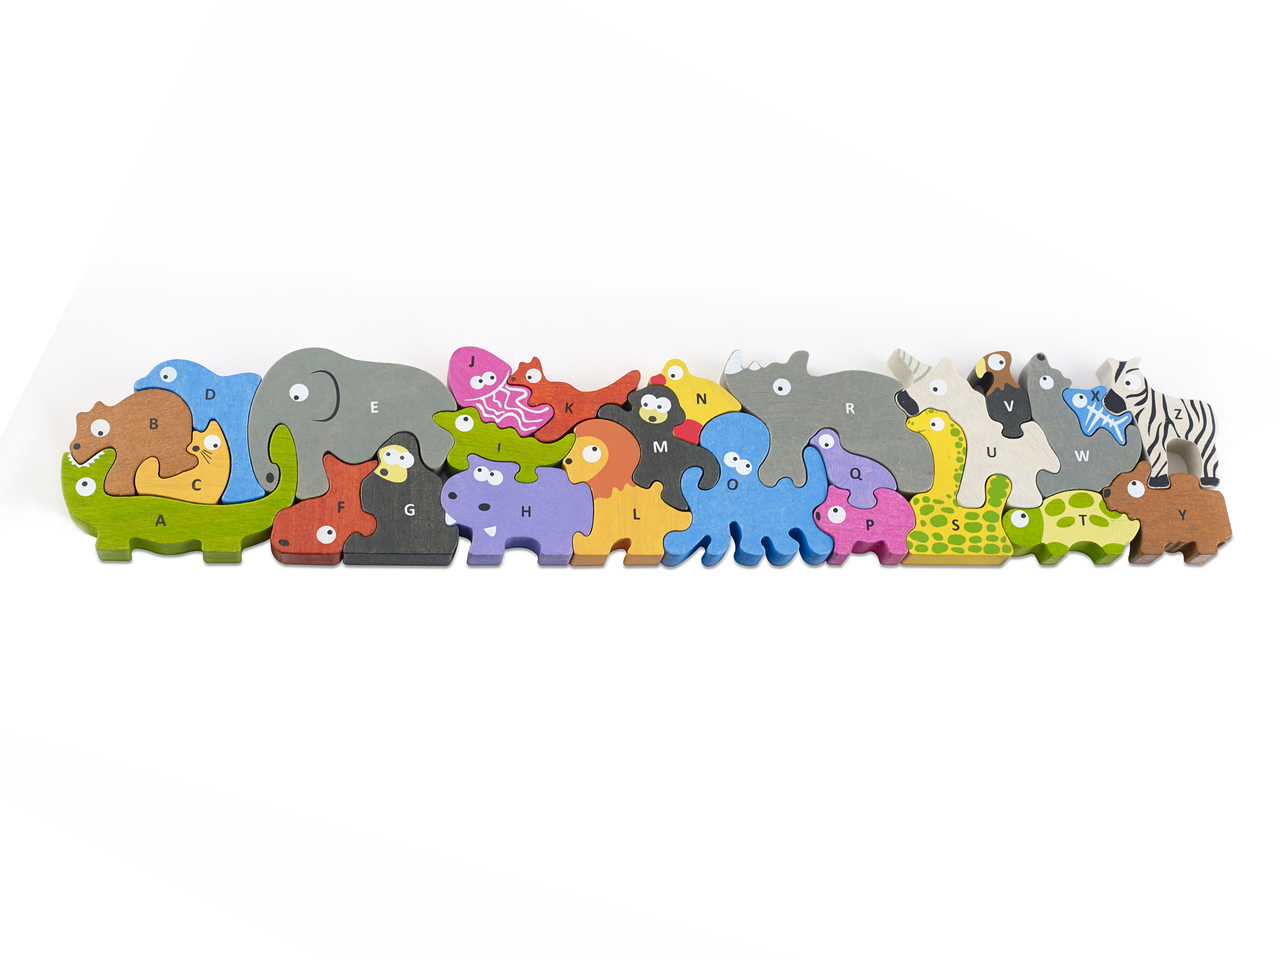 Jumbo Animal Parade A-Z Puzzle Animals Jigsaw Puzzle